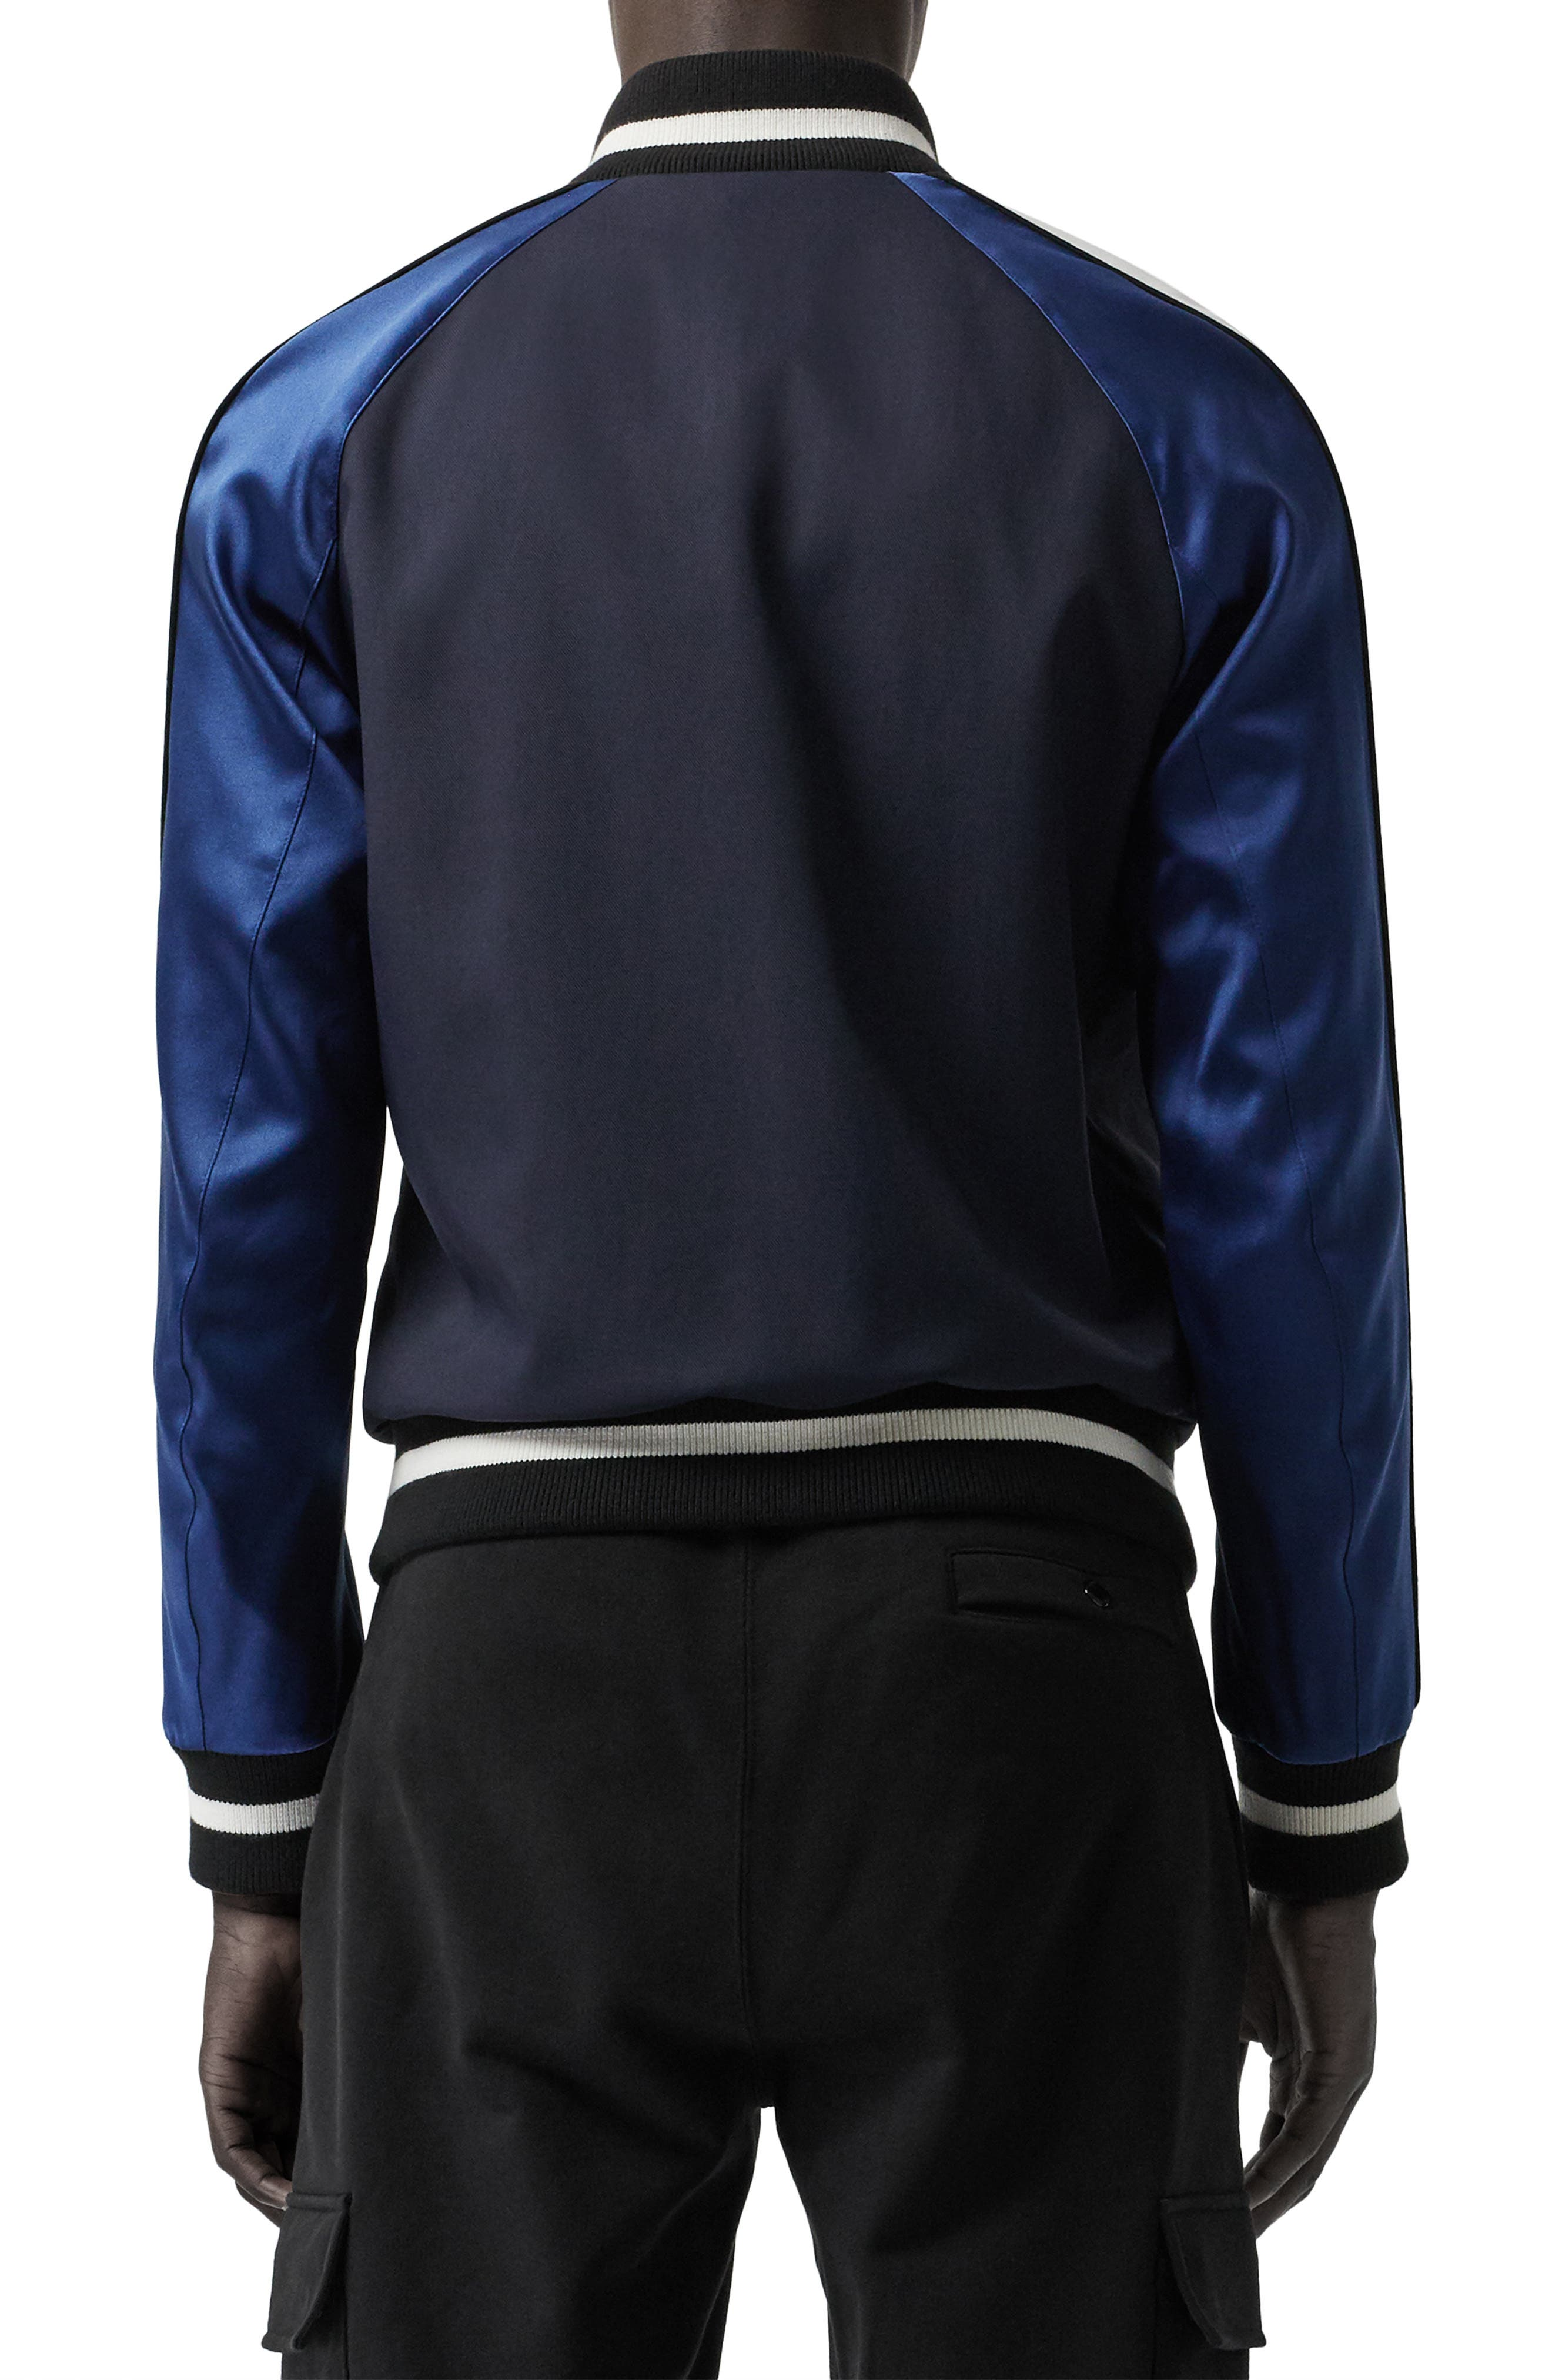 BURBERRY, Thornberry Zip Track Jacket, Alternate thumbnail 2, color, NAVY